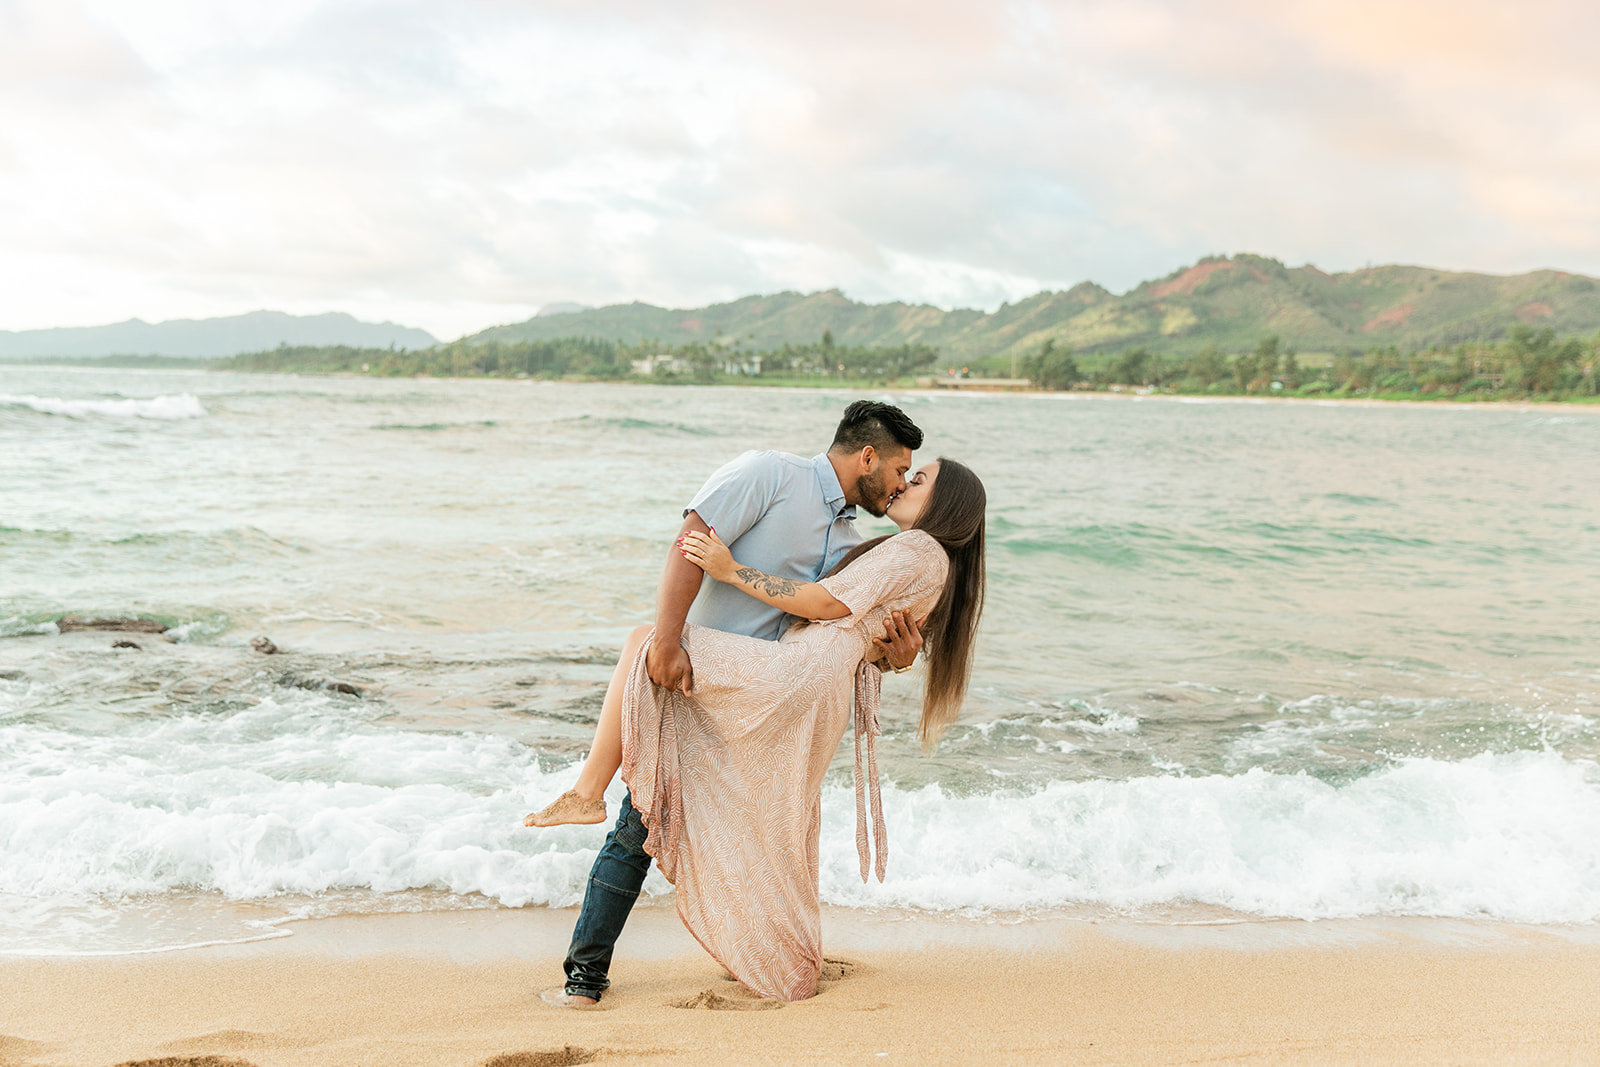 Karlie Colleen Photography - Kauai Hawaii Wedding Photography - Sydney & BJ -31_websize